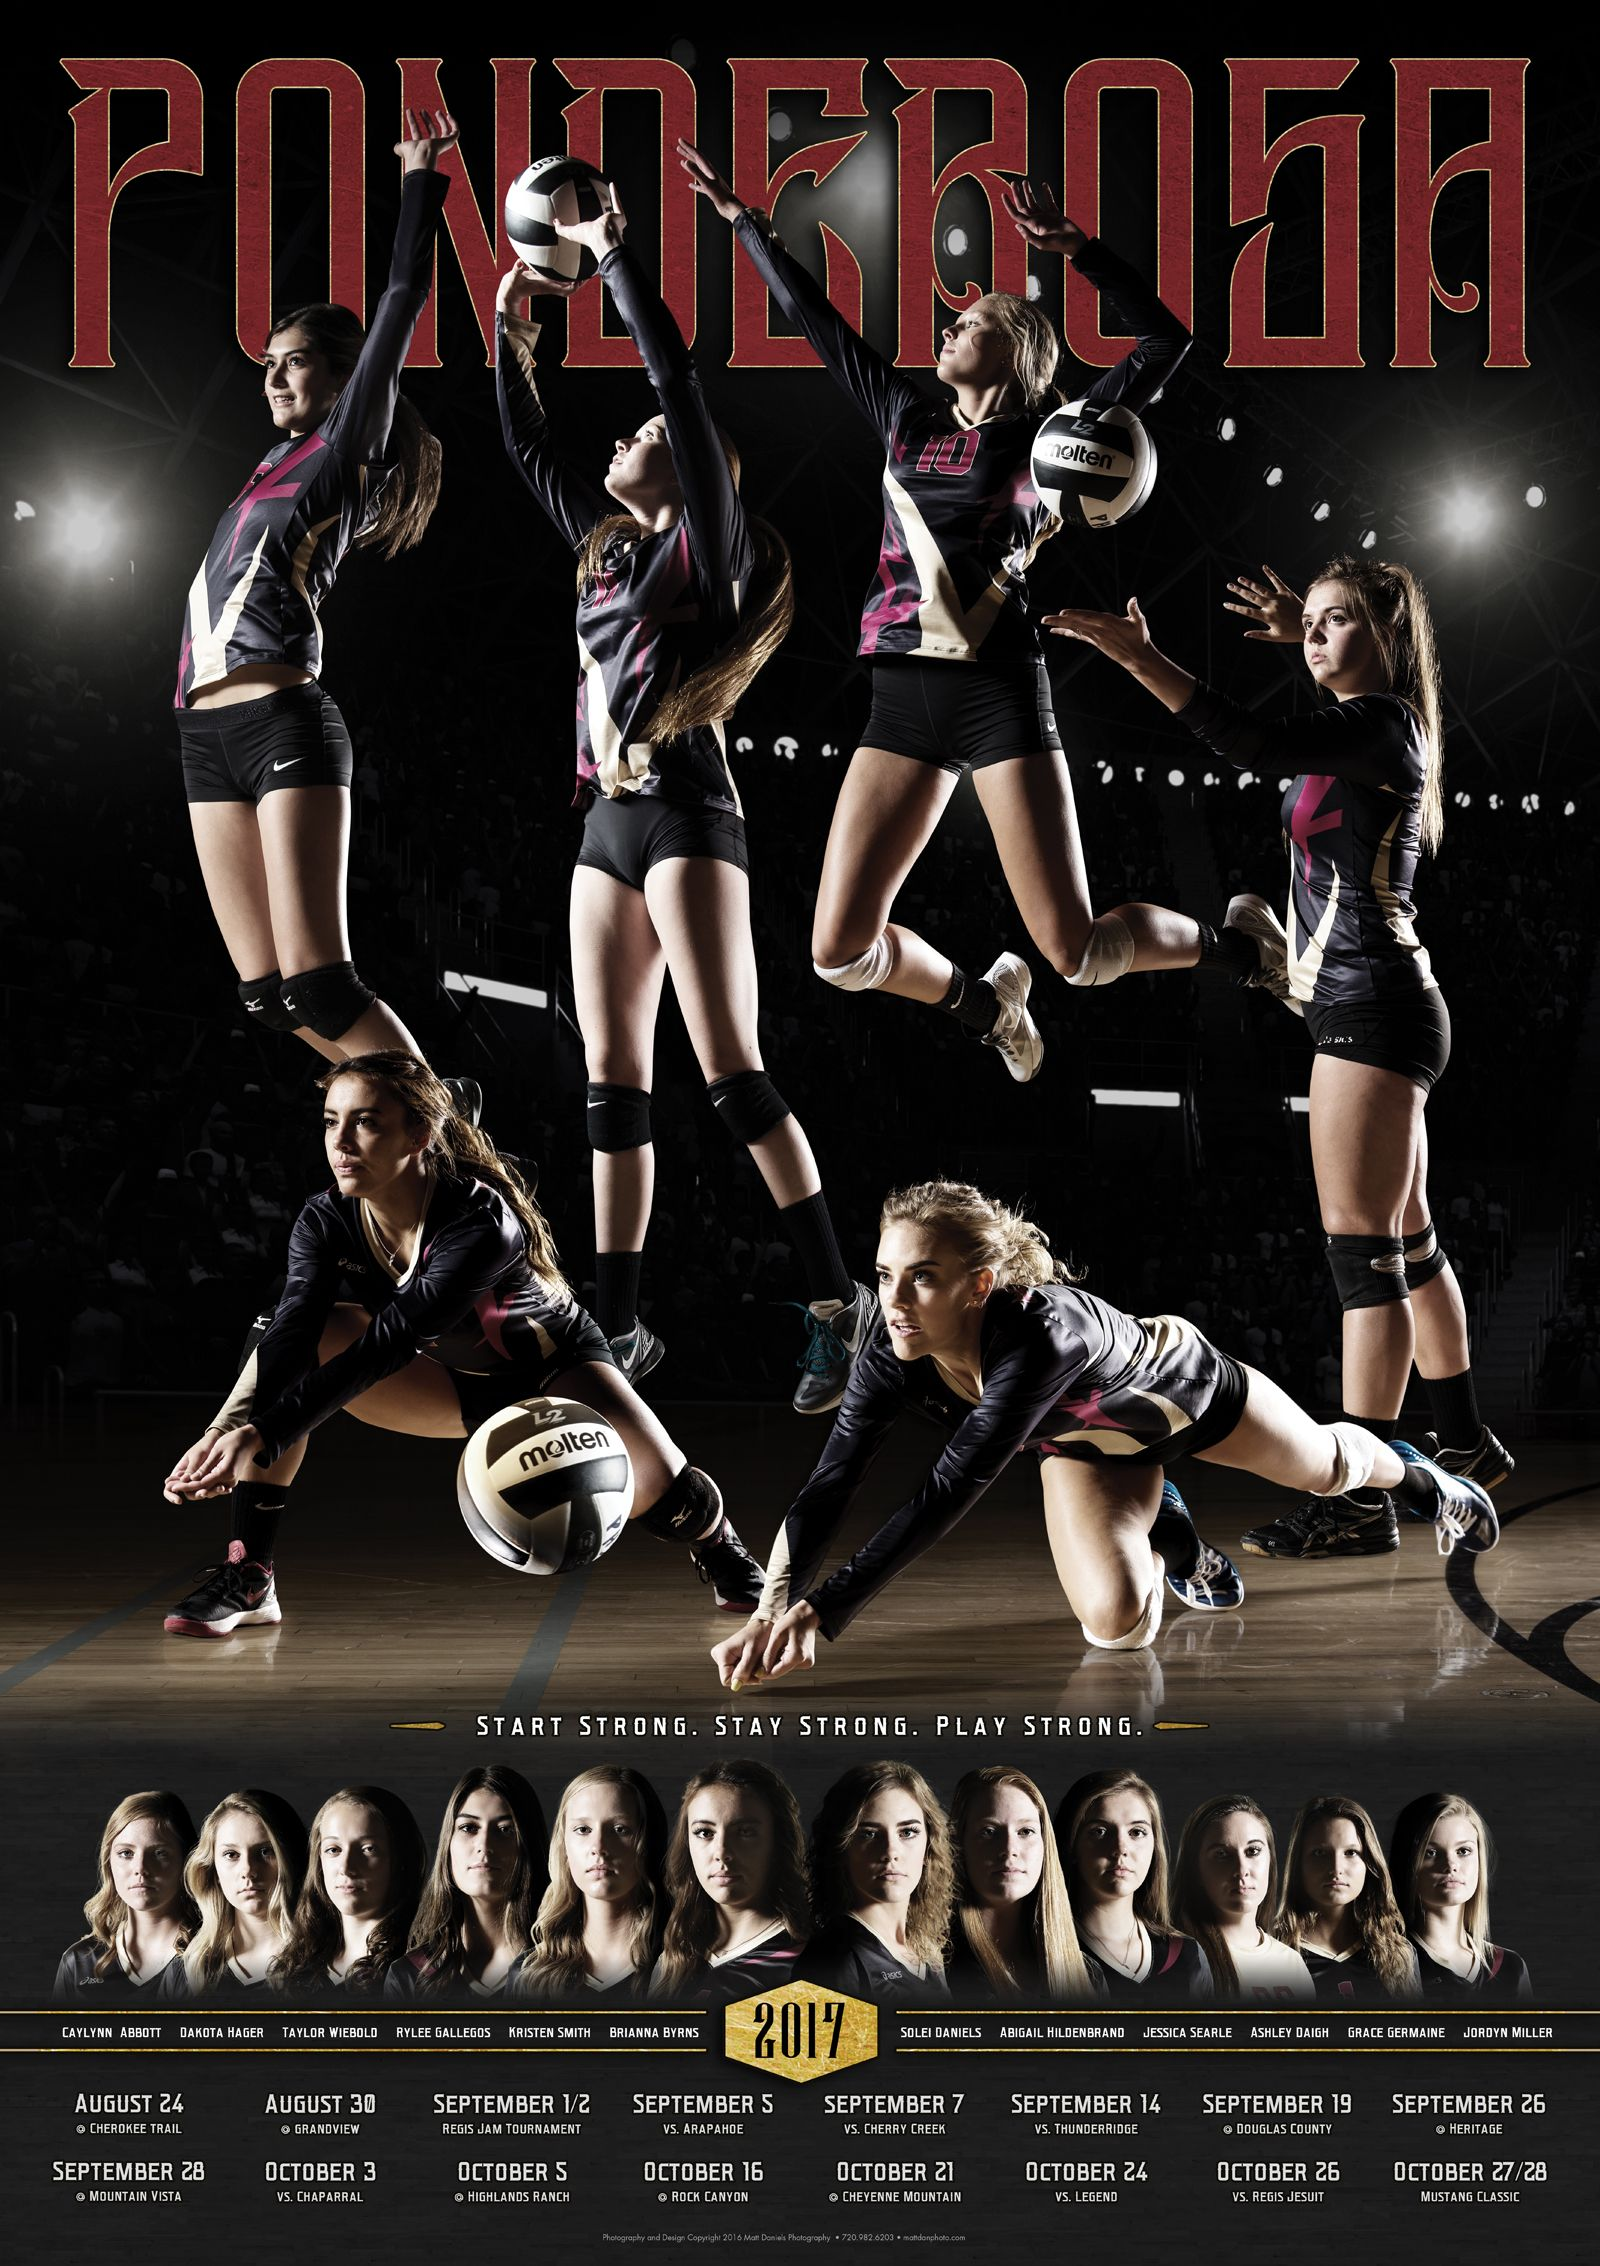 Photography And Poster Design For The 2017 Ponderosa Volleyball Team I Put A Little Extra E Volleyball Team Pictures Volleyball Photos Volleyball Senior Night